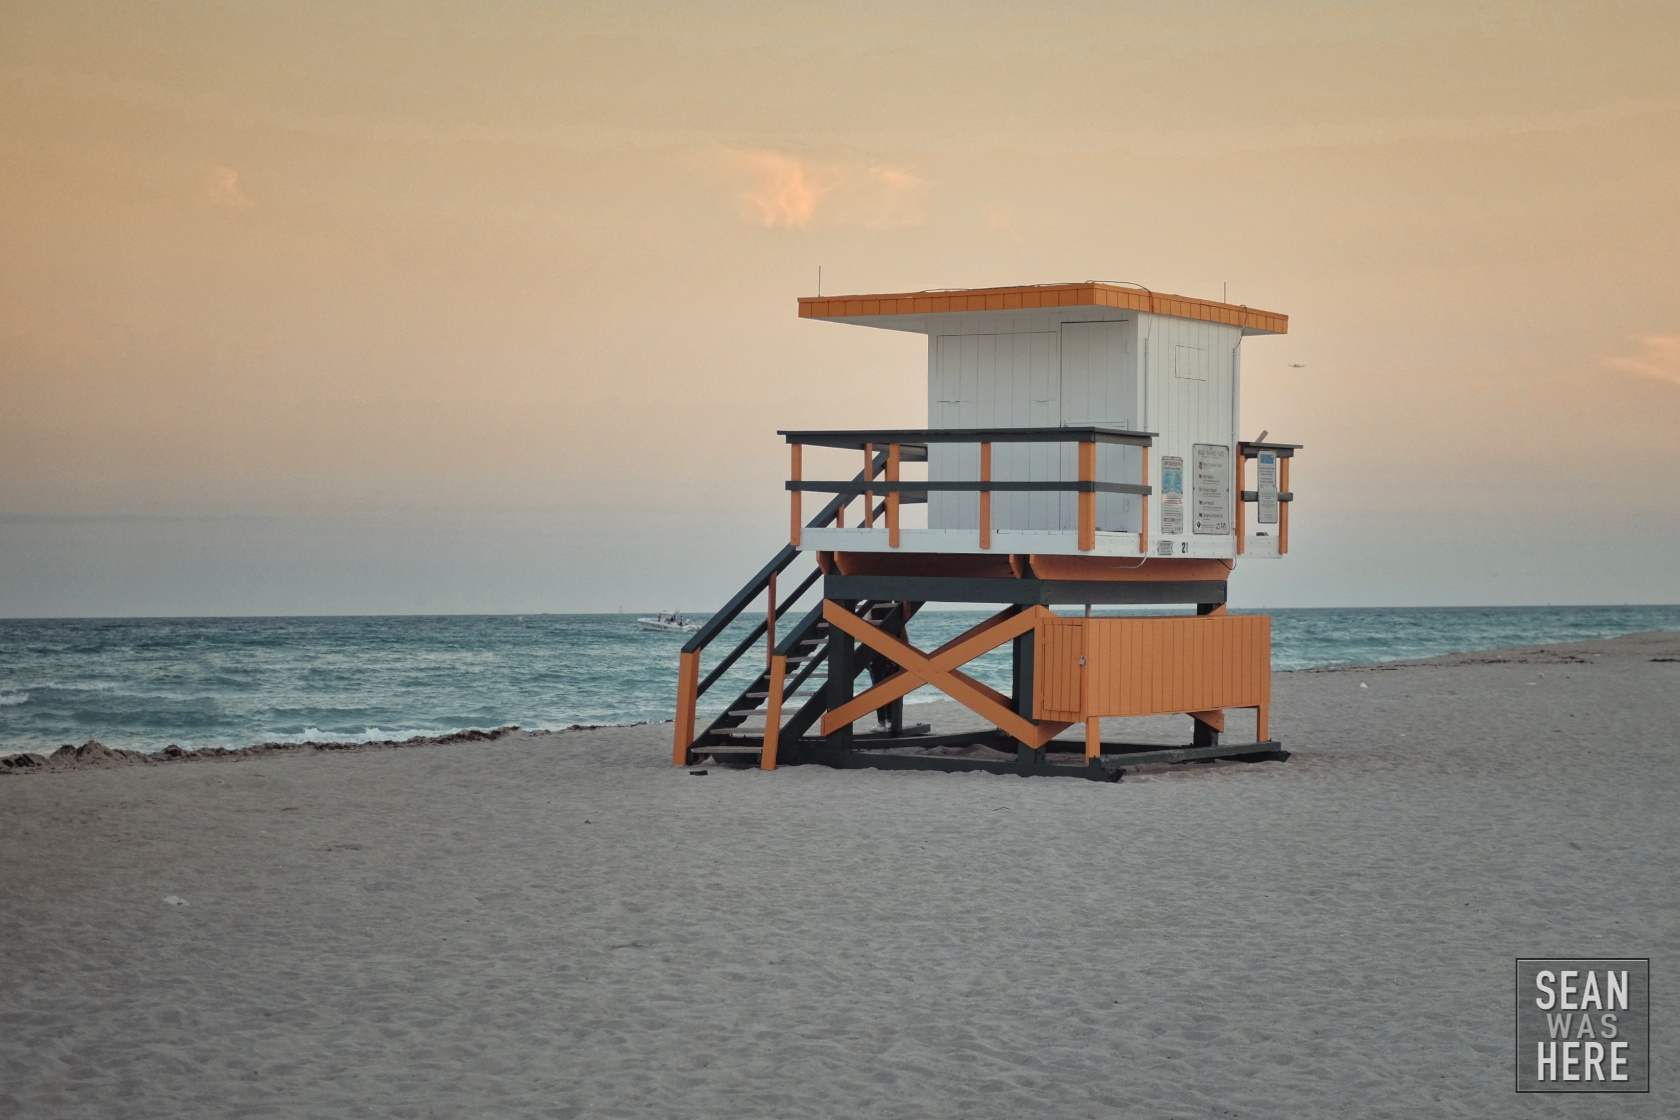 Miami Beach 21st Street Lifeguard Stand